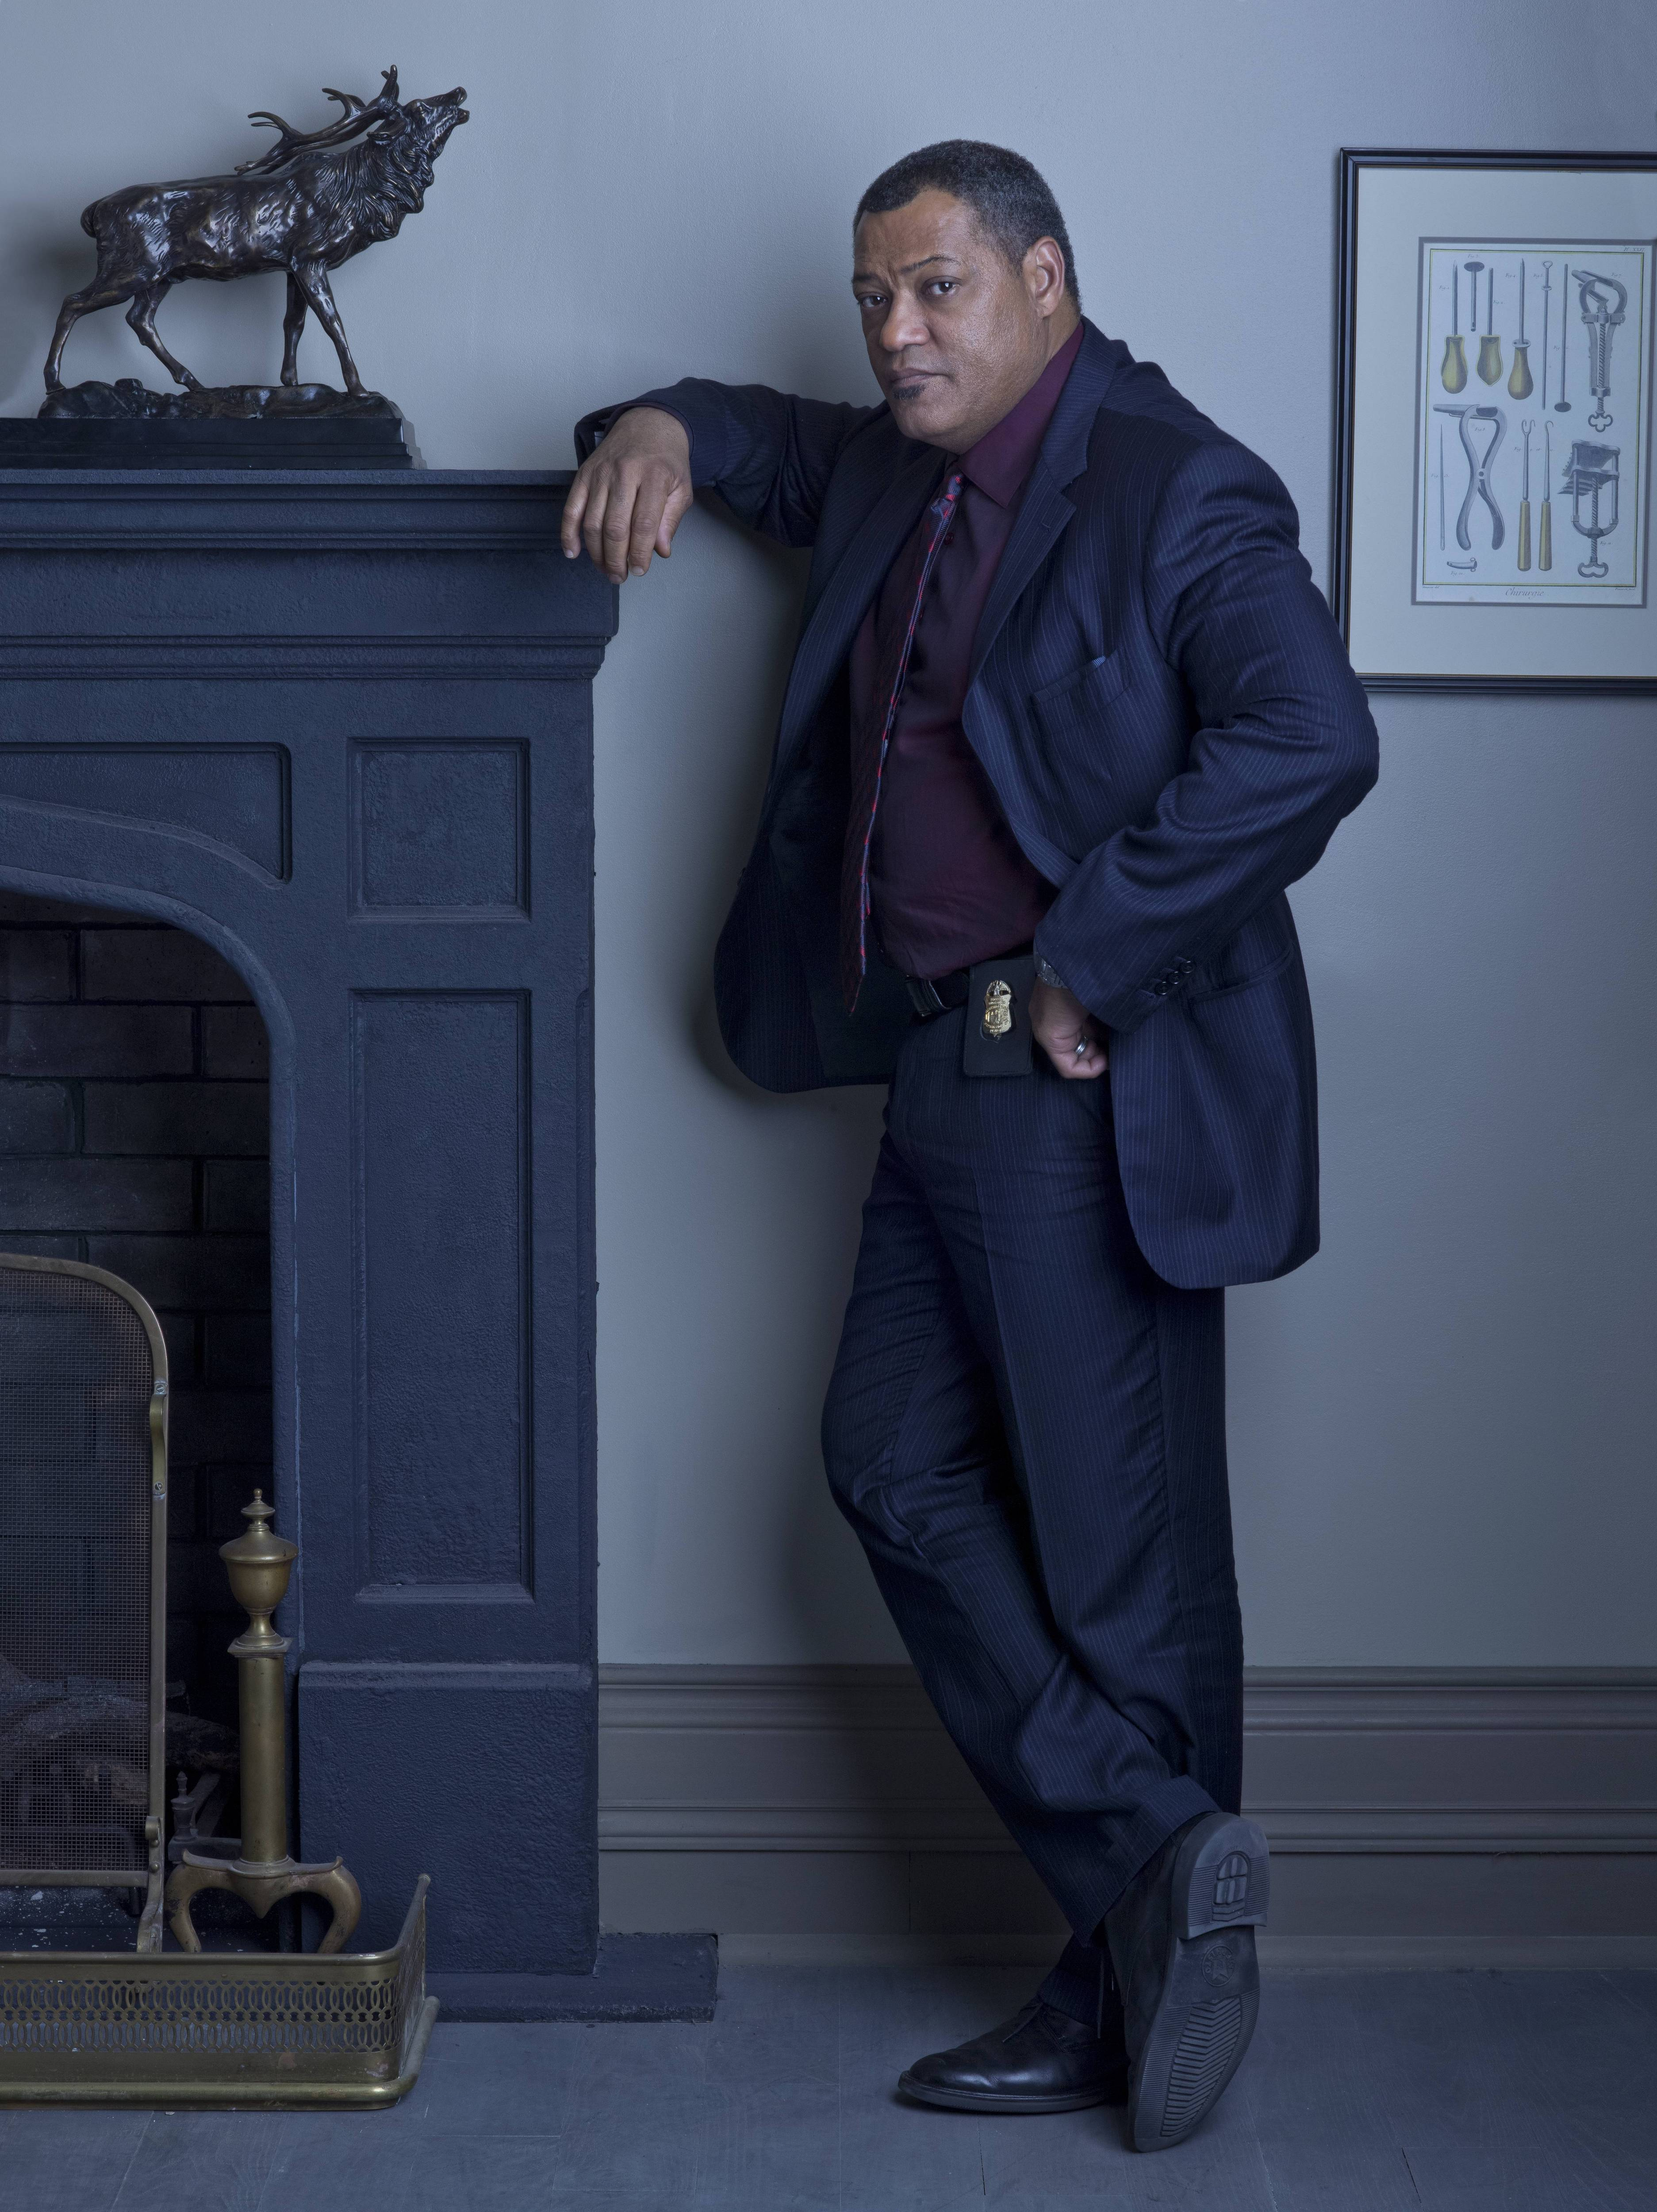 Laurence Fishburne as Agent Jack Crawford